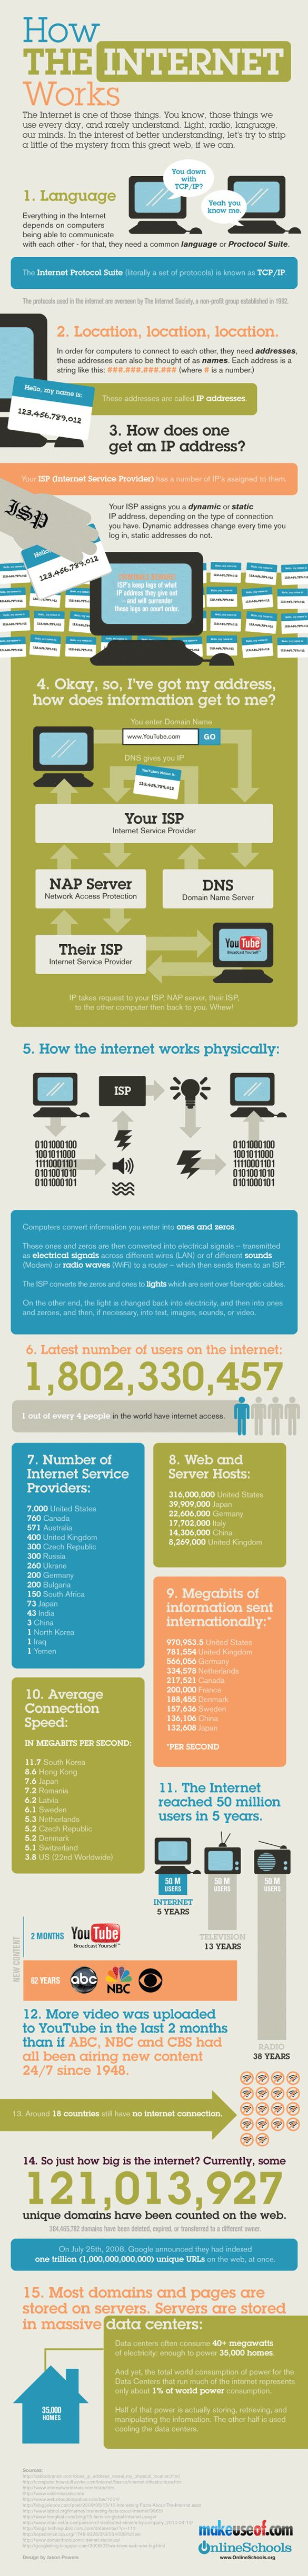 How The INTERNET Works [INFOGRAPHIC] | Almost everyone nowadays uses the Internet. Stuff like Facebook, email, chat, Twitter and YouTube wouldn't be there without the Internet.  But while the web is so useful and easy to use these days only a few understand how it functions. | If you have ever wondered about it, it's time to find out. We have made a nice infographic showing exactly how the Internet works.